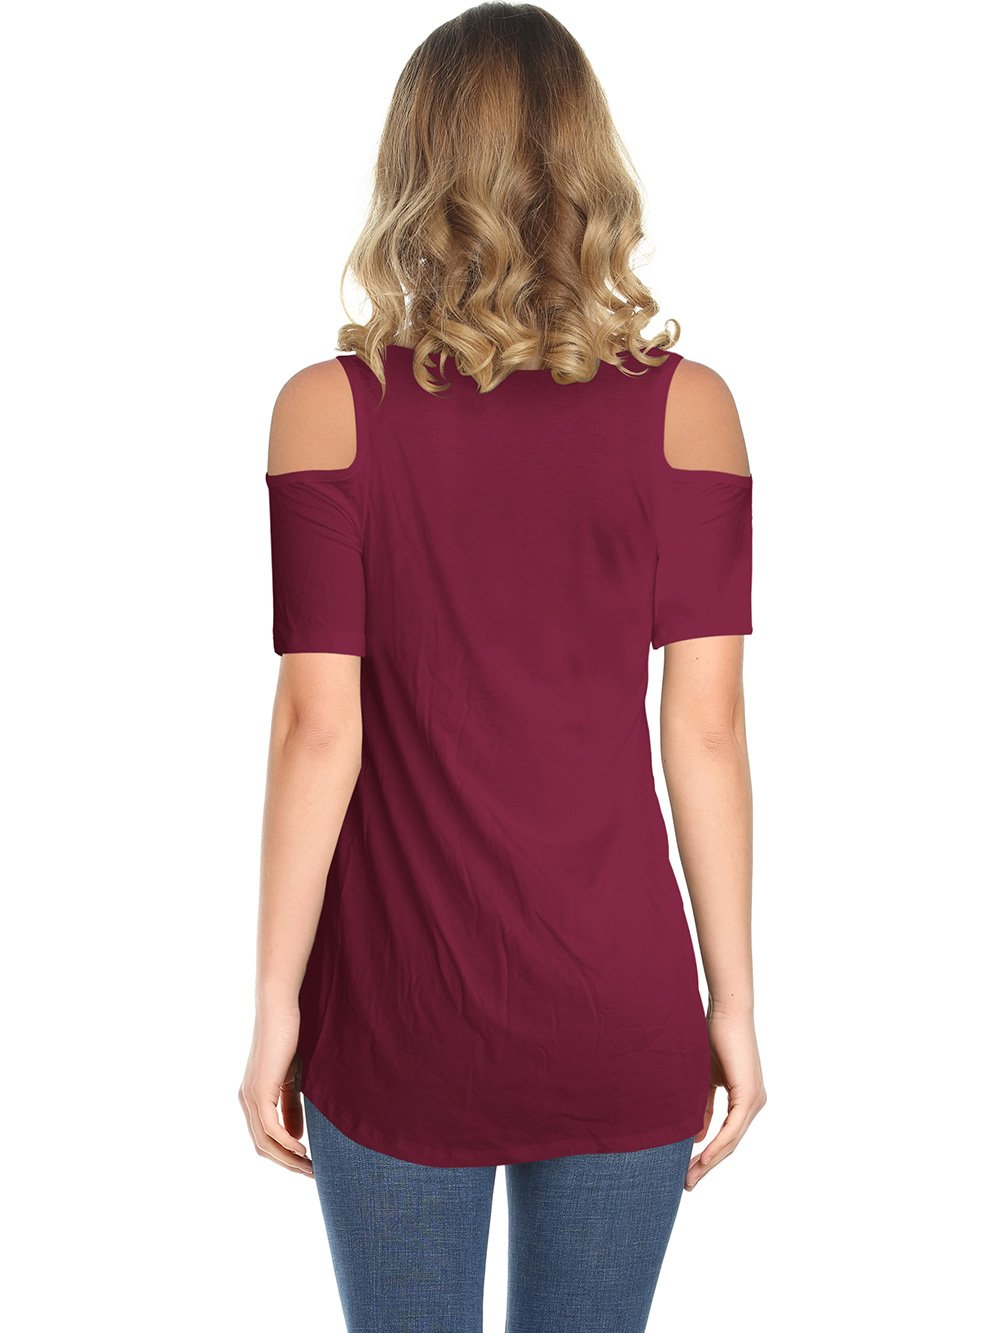 35690d417167 Amoretu Casual Cute Short Sleeve T Shirts V-Neck Tops for Women (Burgundy,  M) - 4326CTM < Knits & Tees < Clothing, Shoes & Jewelry - tibs